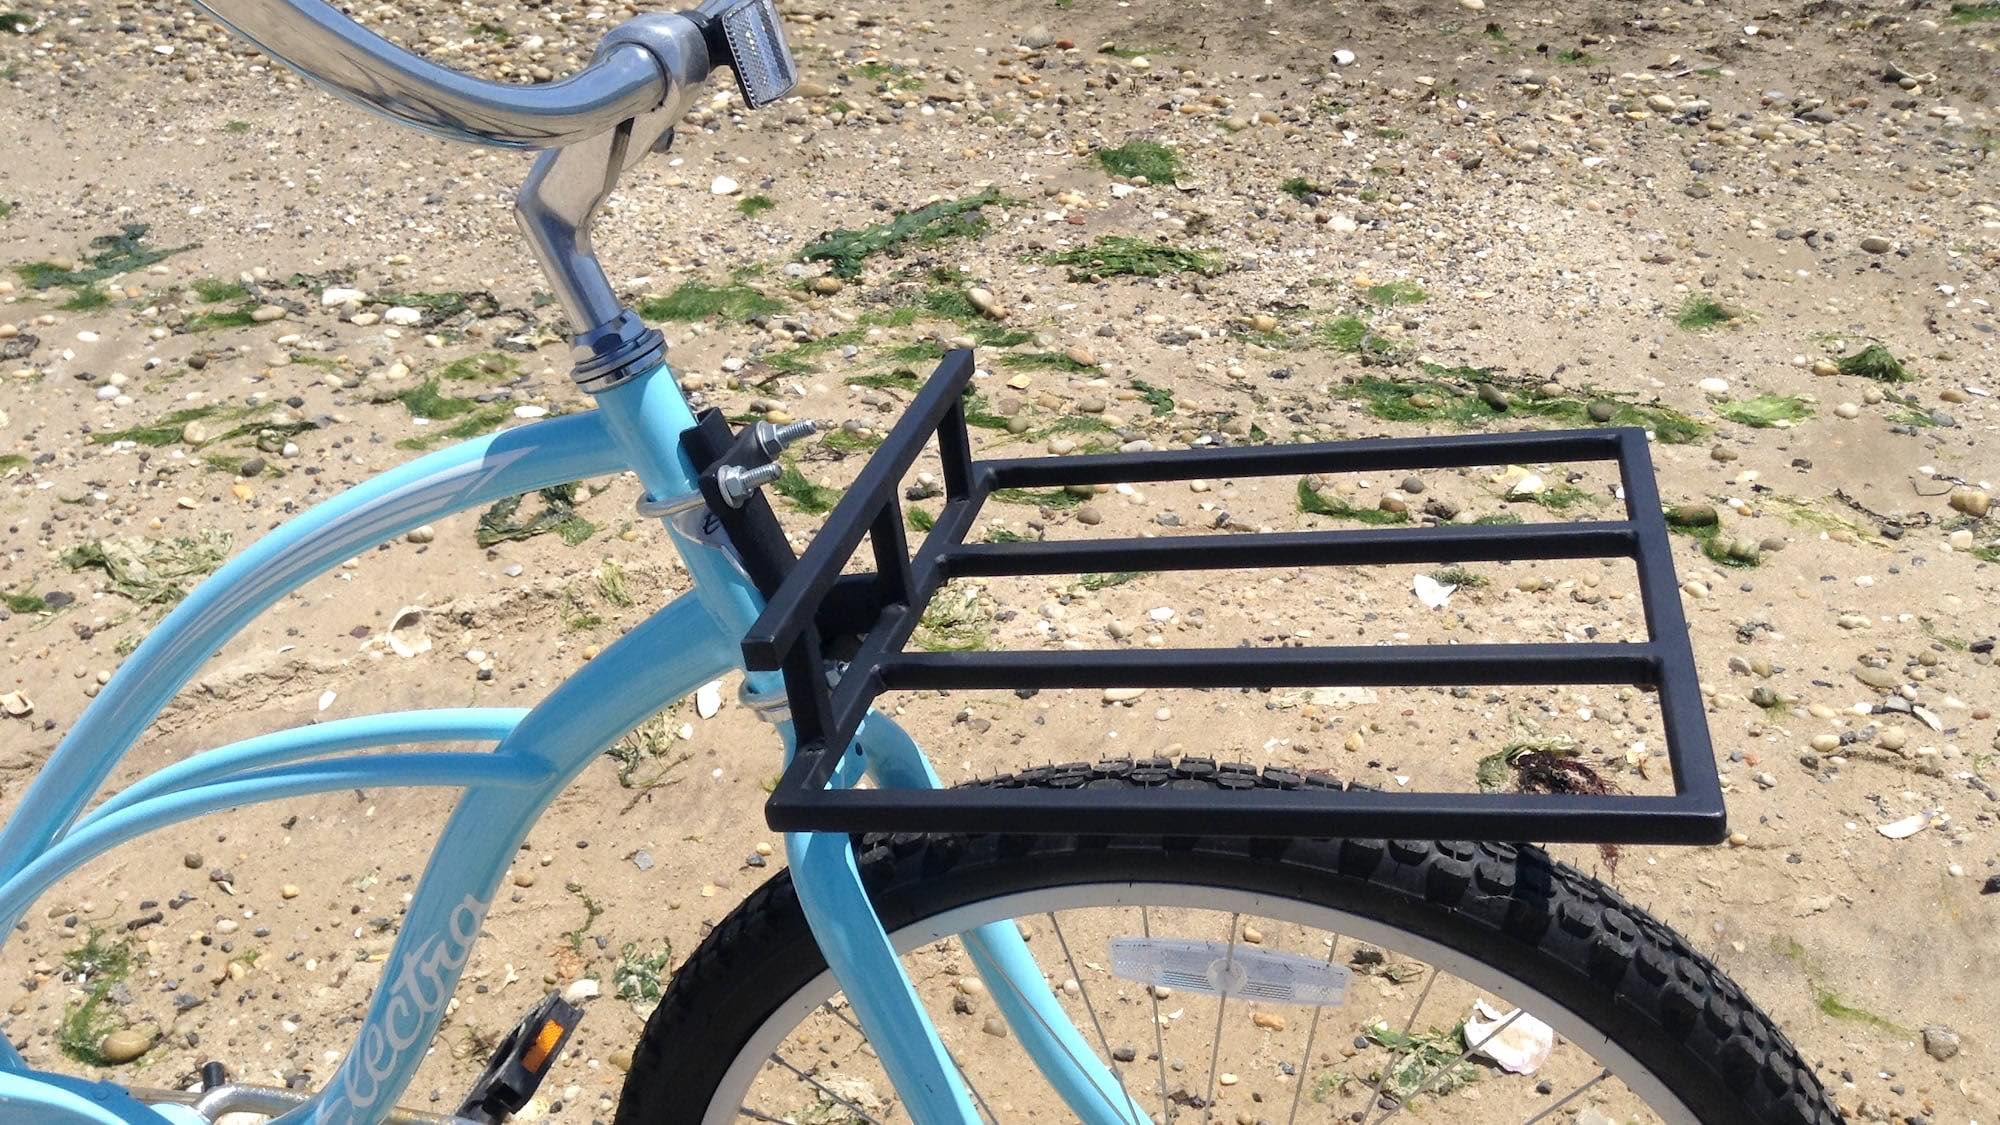 TRACKRAX Strong Bicycle Rack